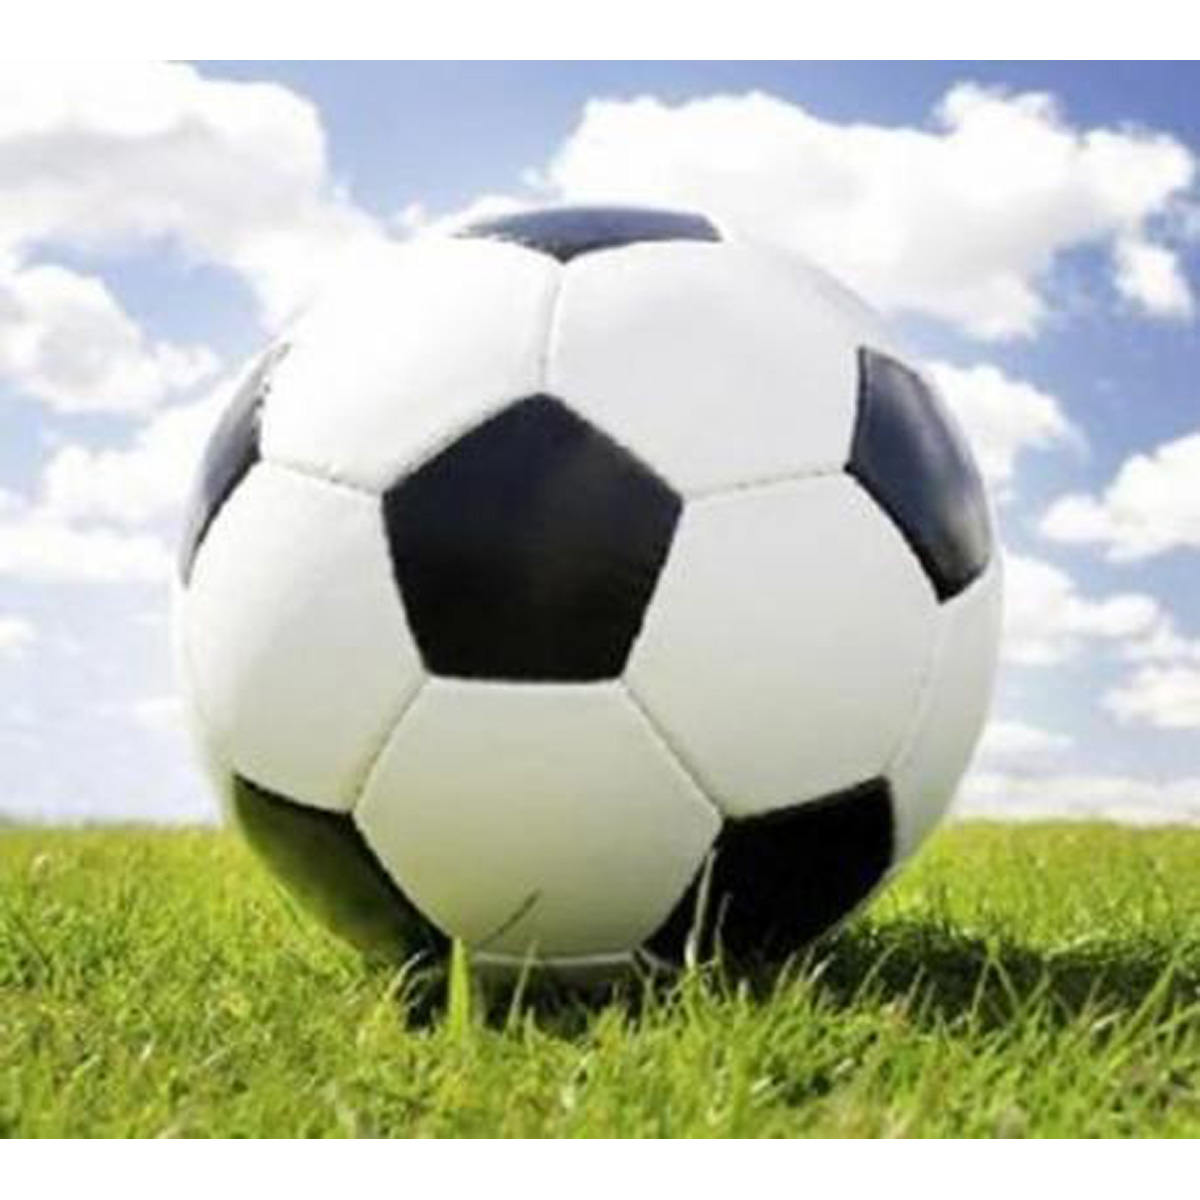 FOOTBALL: Banbury remain bottom after fifth successive defeat